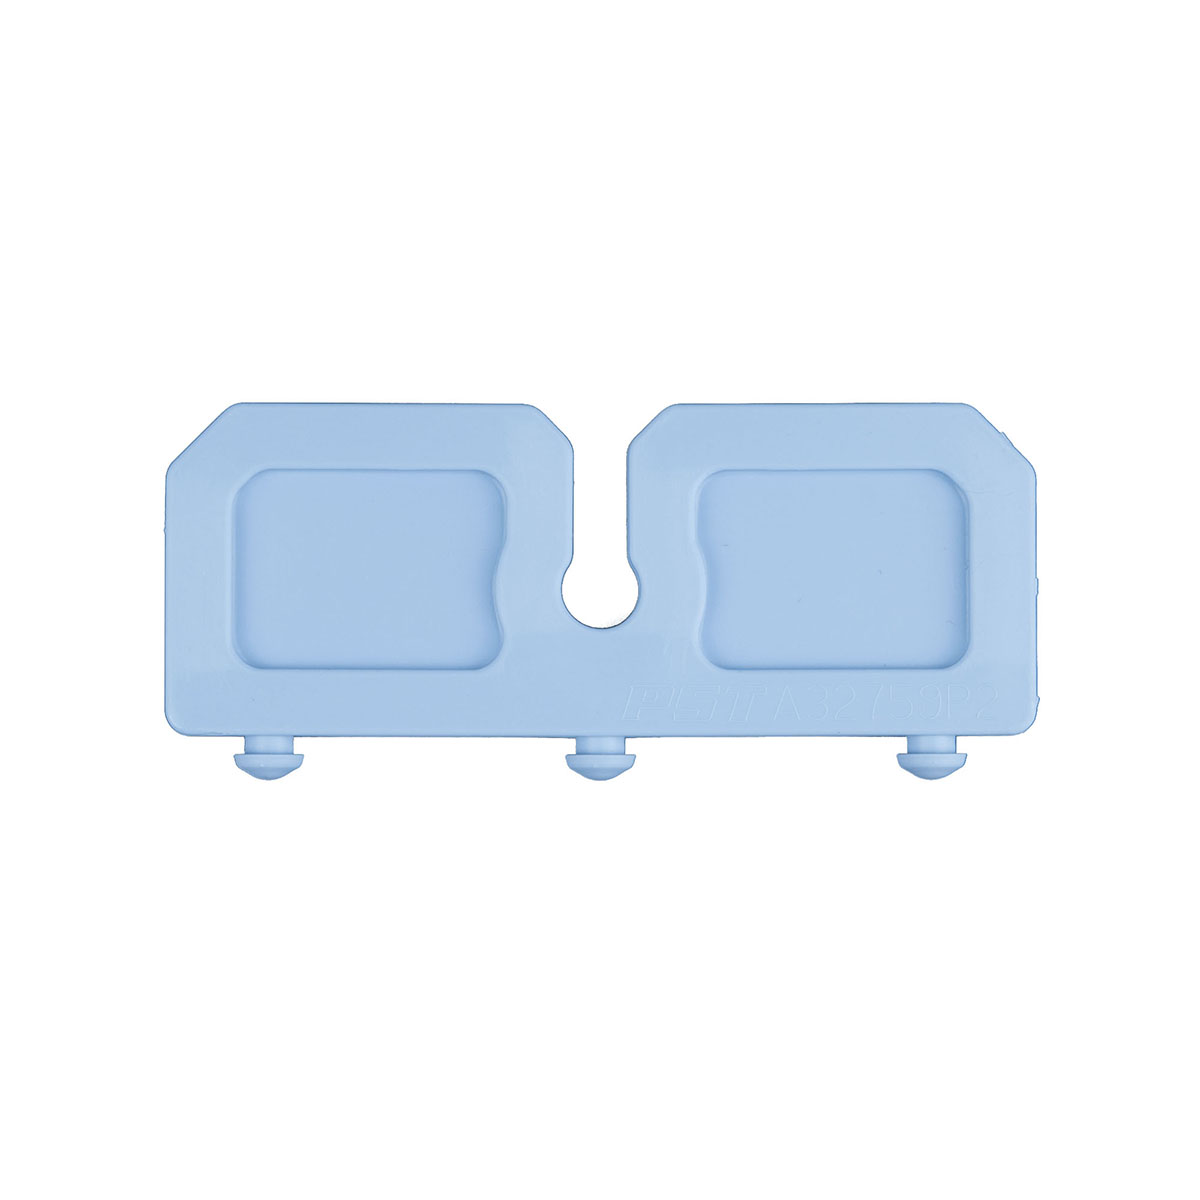 Silicone Insert Image